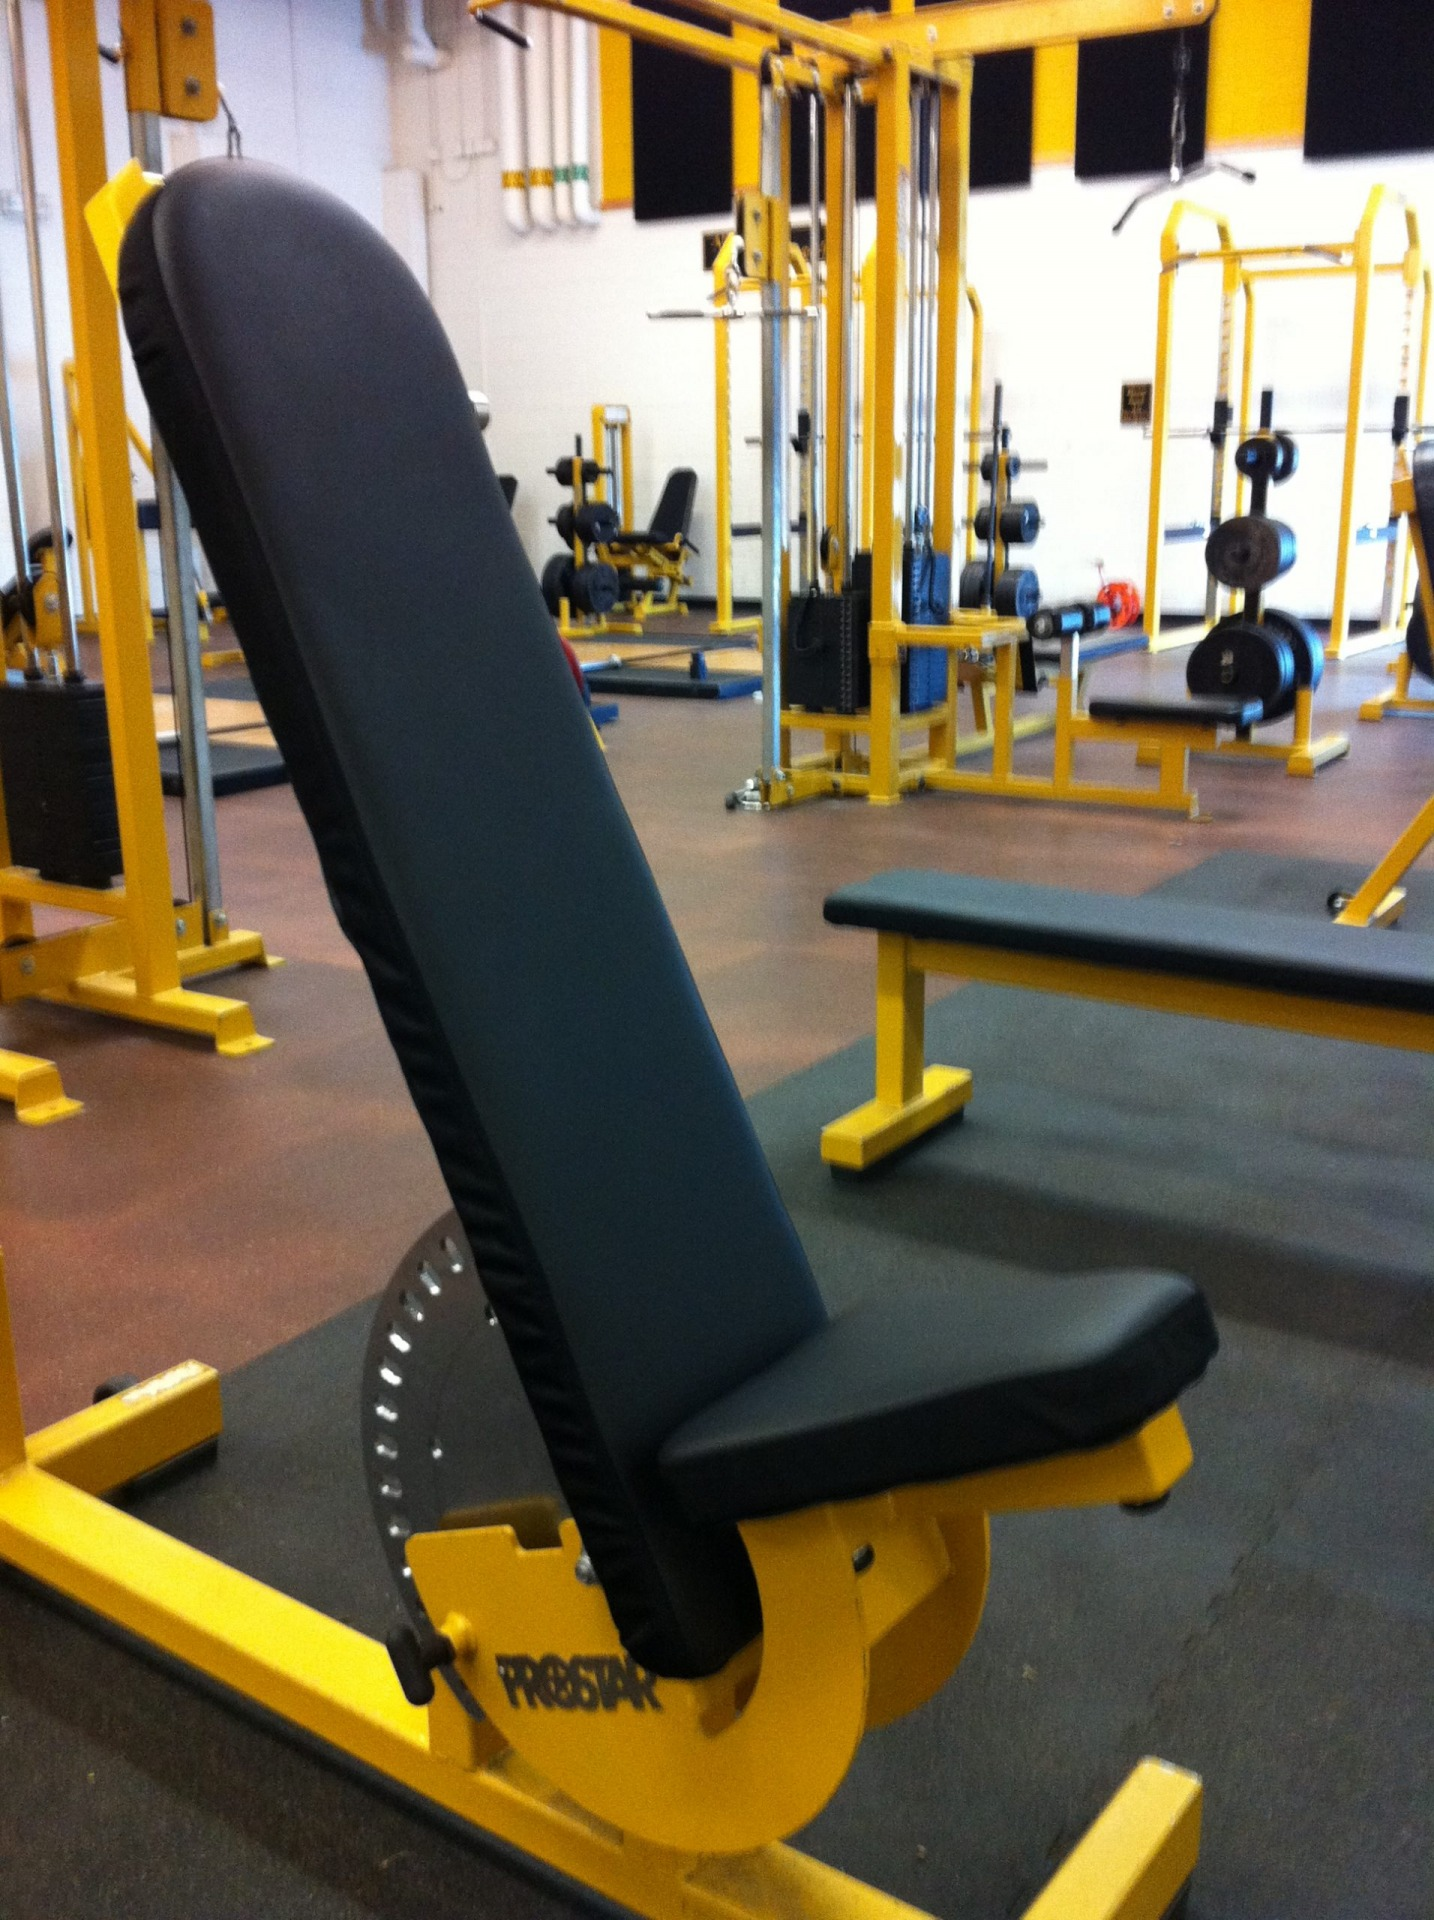 Adjustable Incline Bench Recovered in Ballisitc Nylon and BoltaSport Olympus Black